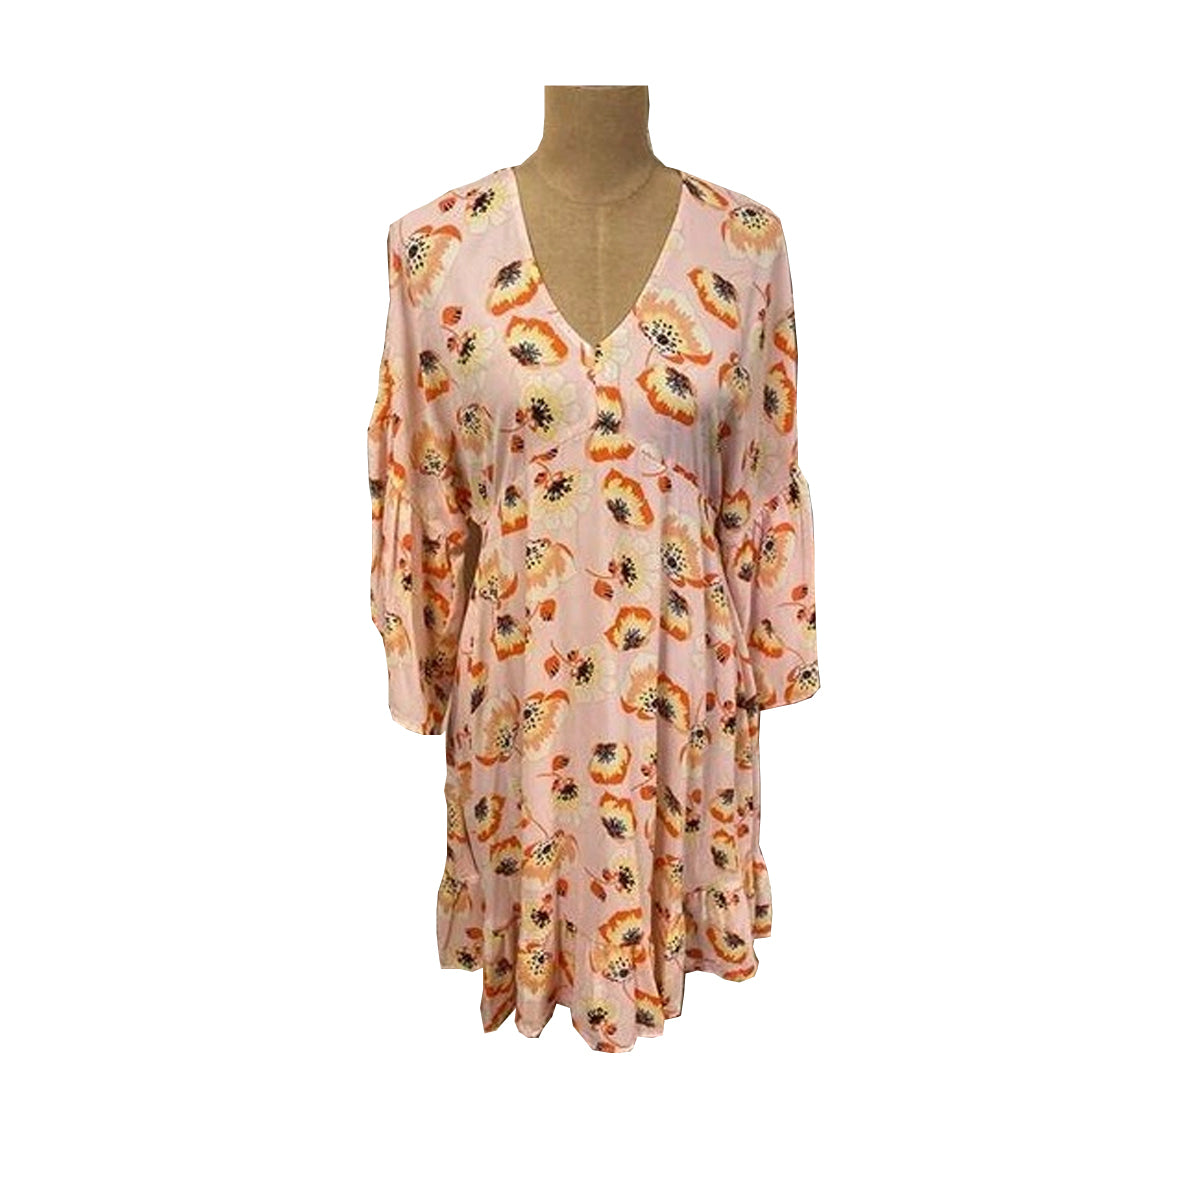 Ivy Jane Women's Burst of Flowers Dress - Peach